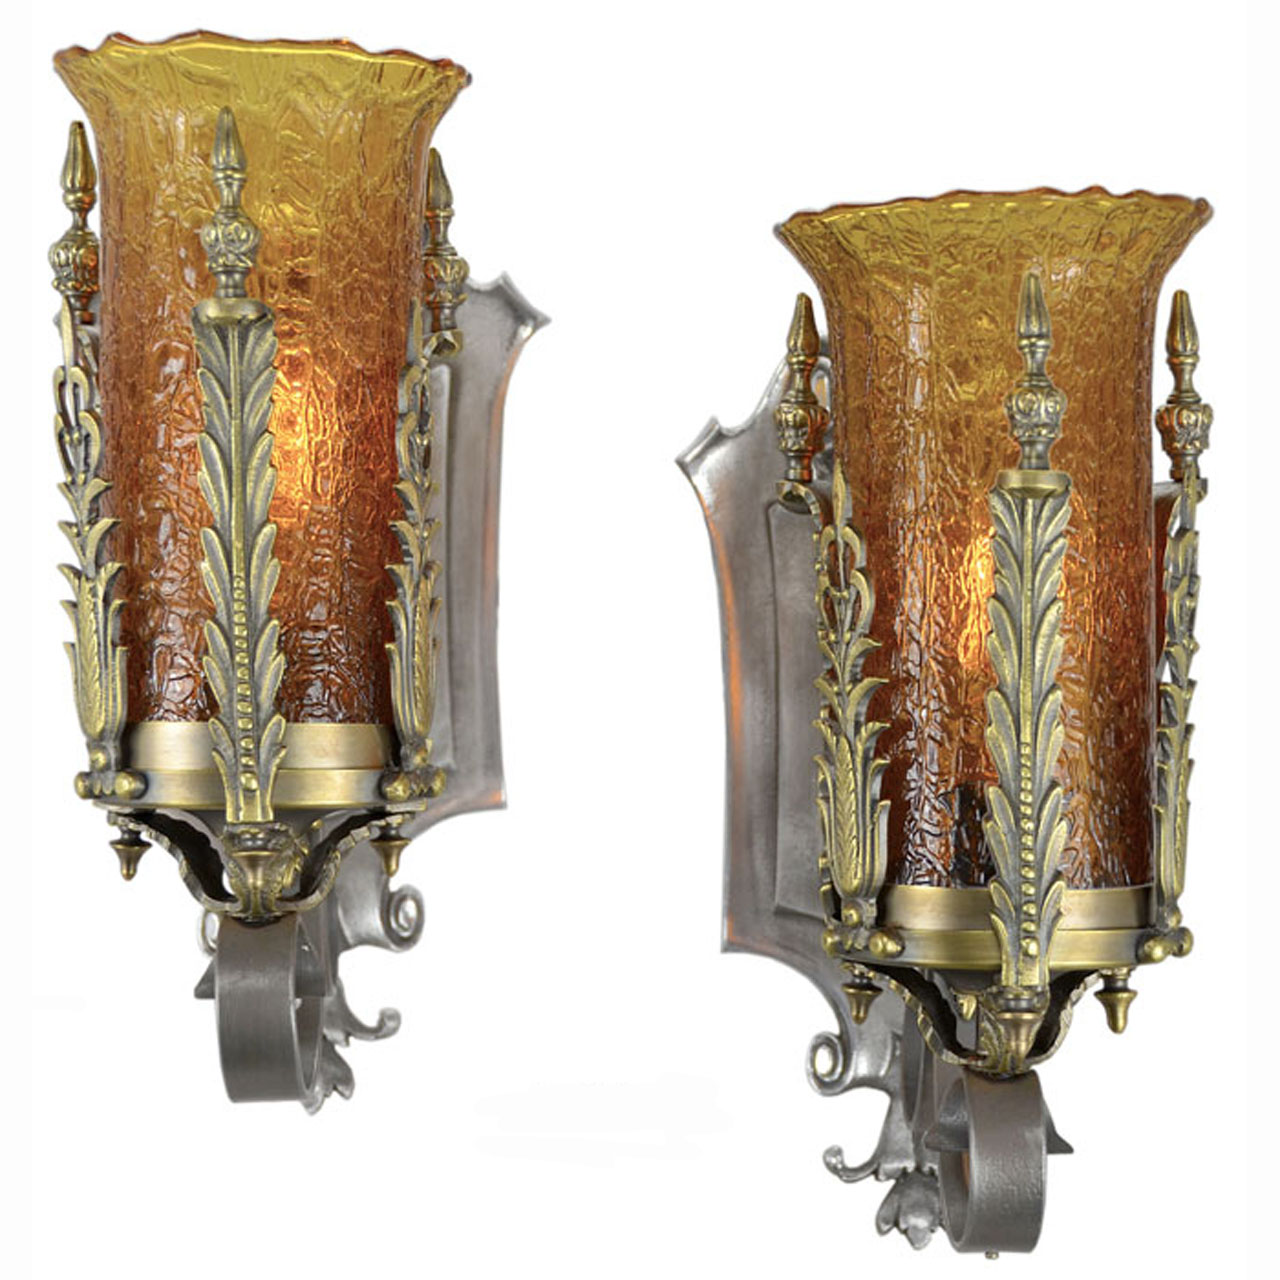 Pair of Antique 1920s - 1930s Art Deco Wall Sconces with ... on Vintage Wall Sconces id=66340